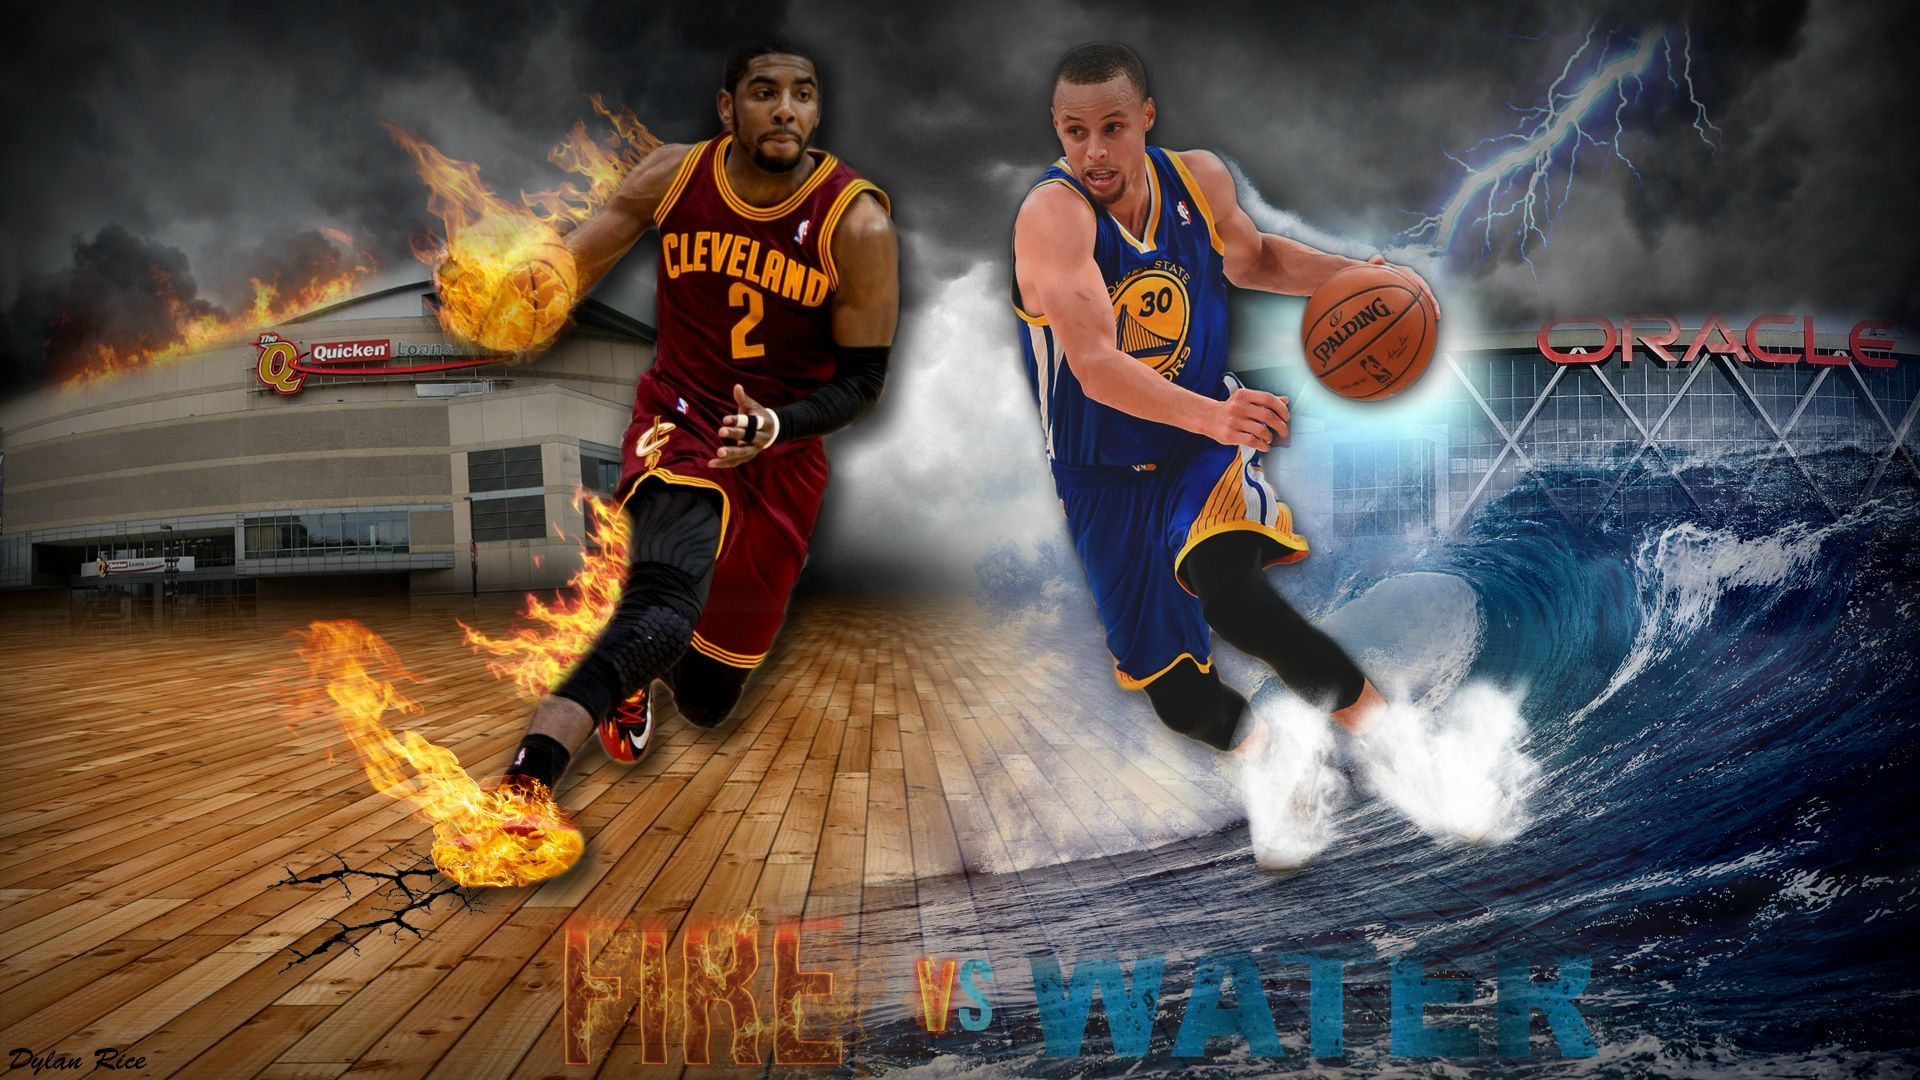 Sport Wallpaper Stephen Curry: Fire Vs Water Stephen Curry Wallpaper HD #4697 Wallpaper